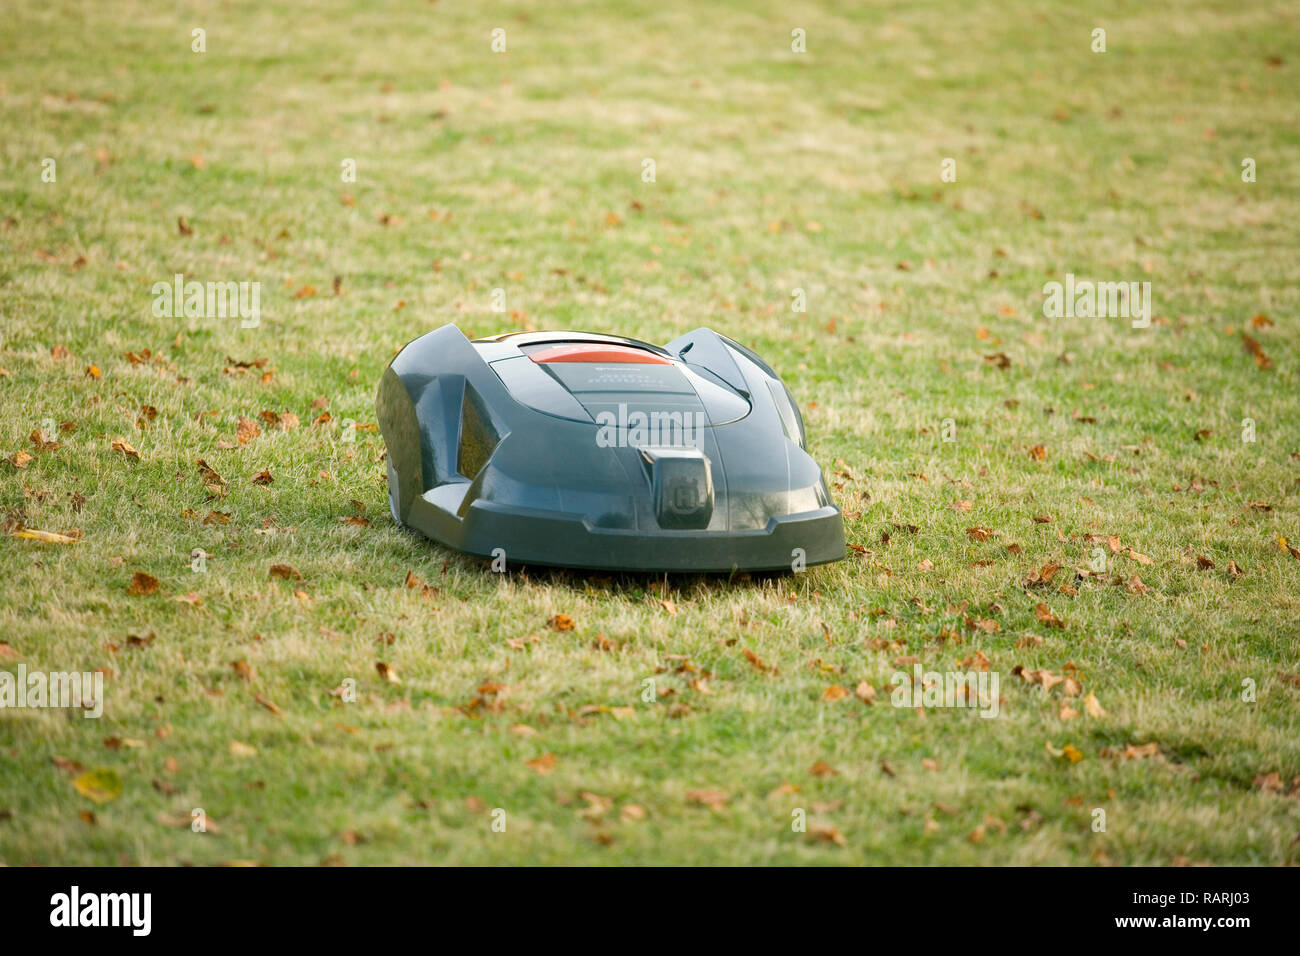 Automatic robot lawn mower cutting grass and heading towards the camera - Stock Image